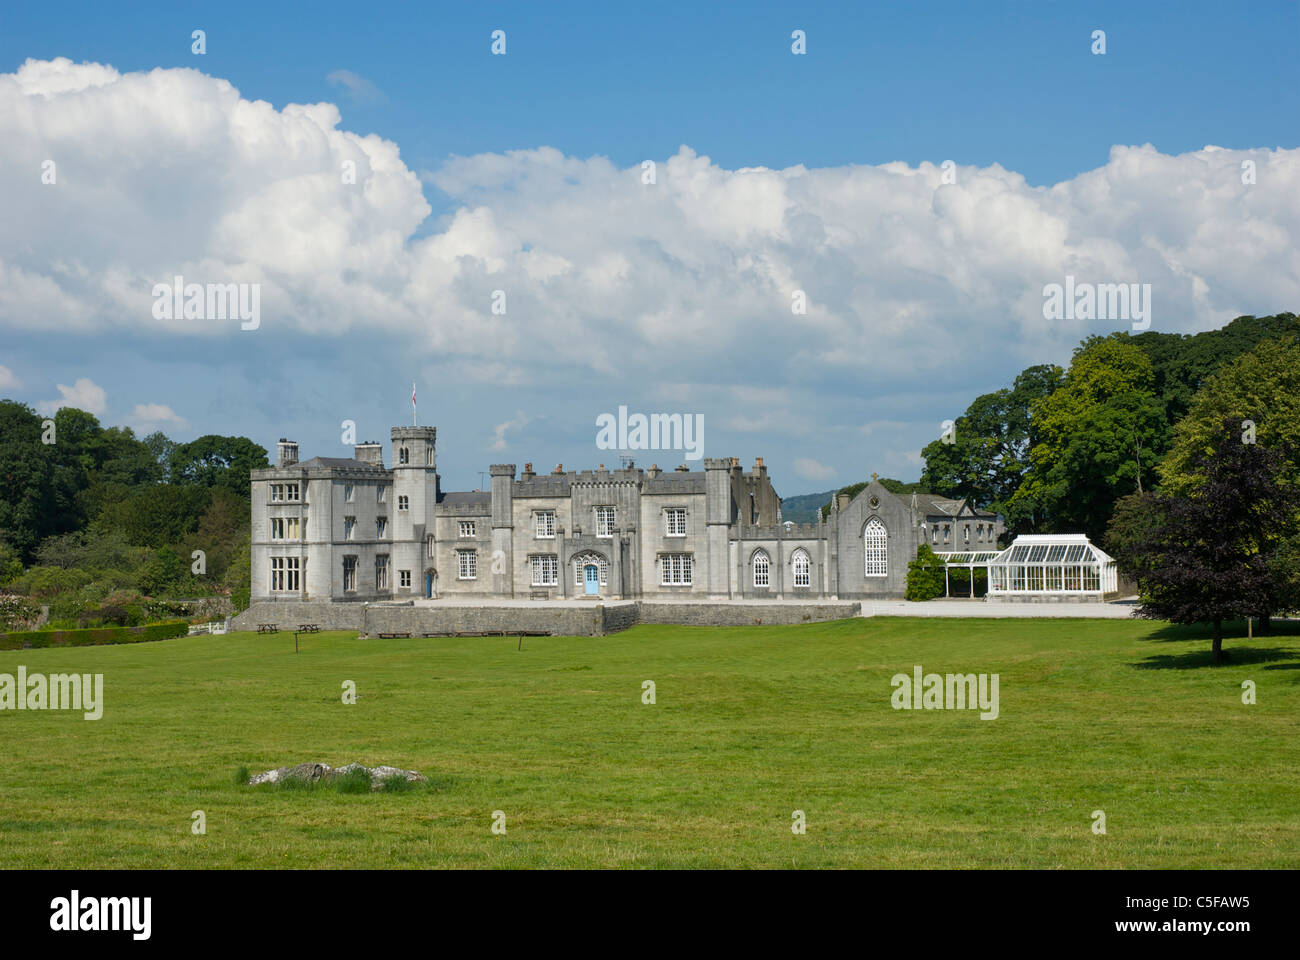 Leighton Hall, home of the Gillow family, near Carnforth, Lancashire, England UK. - Stock Image